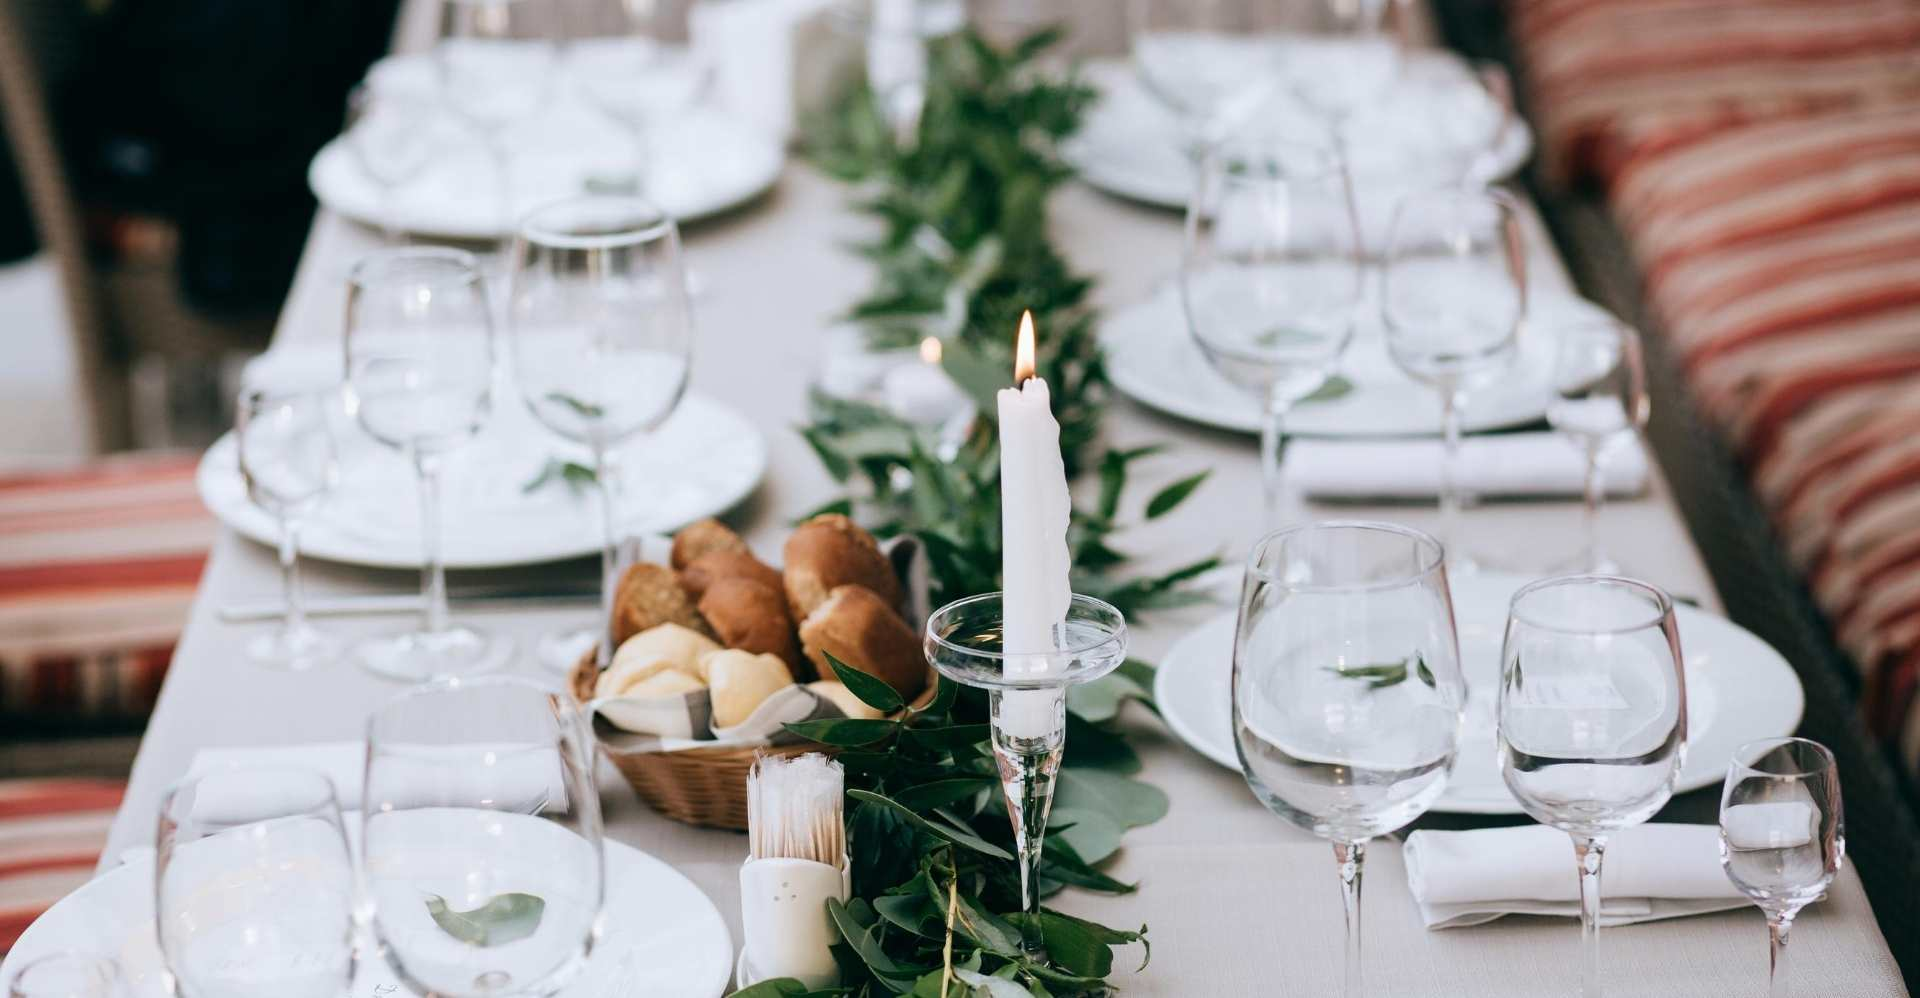 How To: Greenery Wedding Centerpiece: Step by step guide - 2